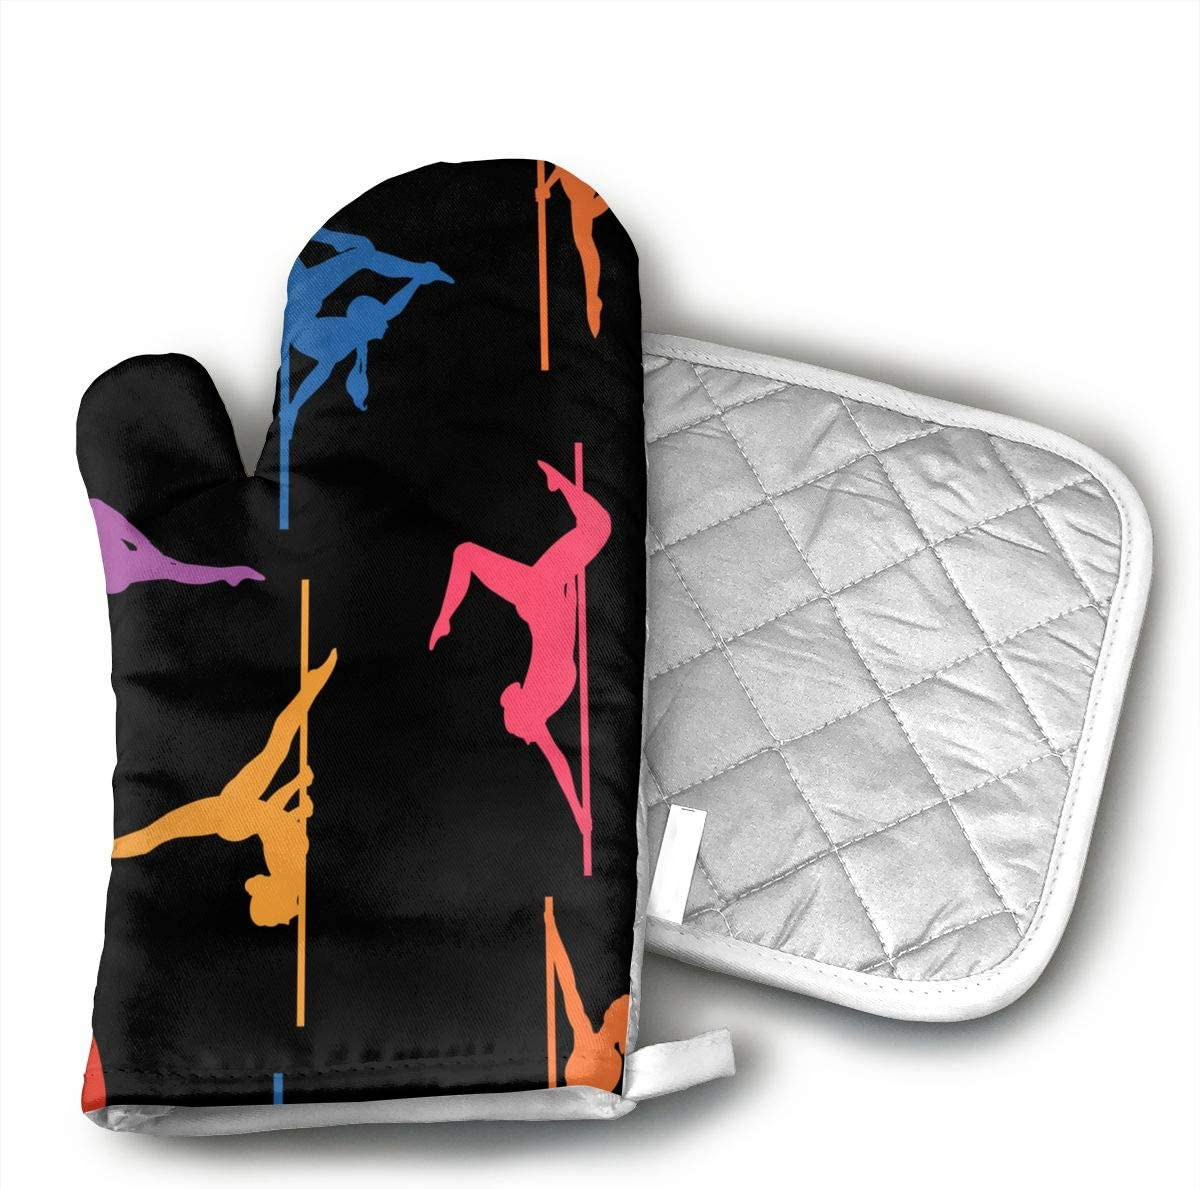 Pole Dance Oven Mitt Pot Holder Set Kitchen Quilted Cotton Polyester LiningOven Mitt with